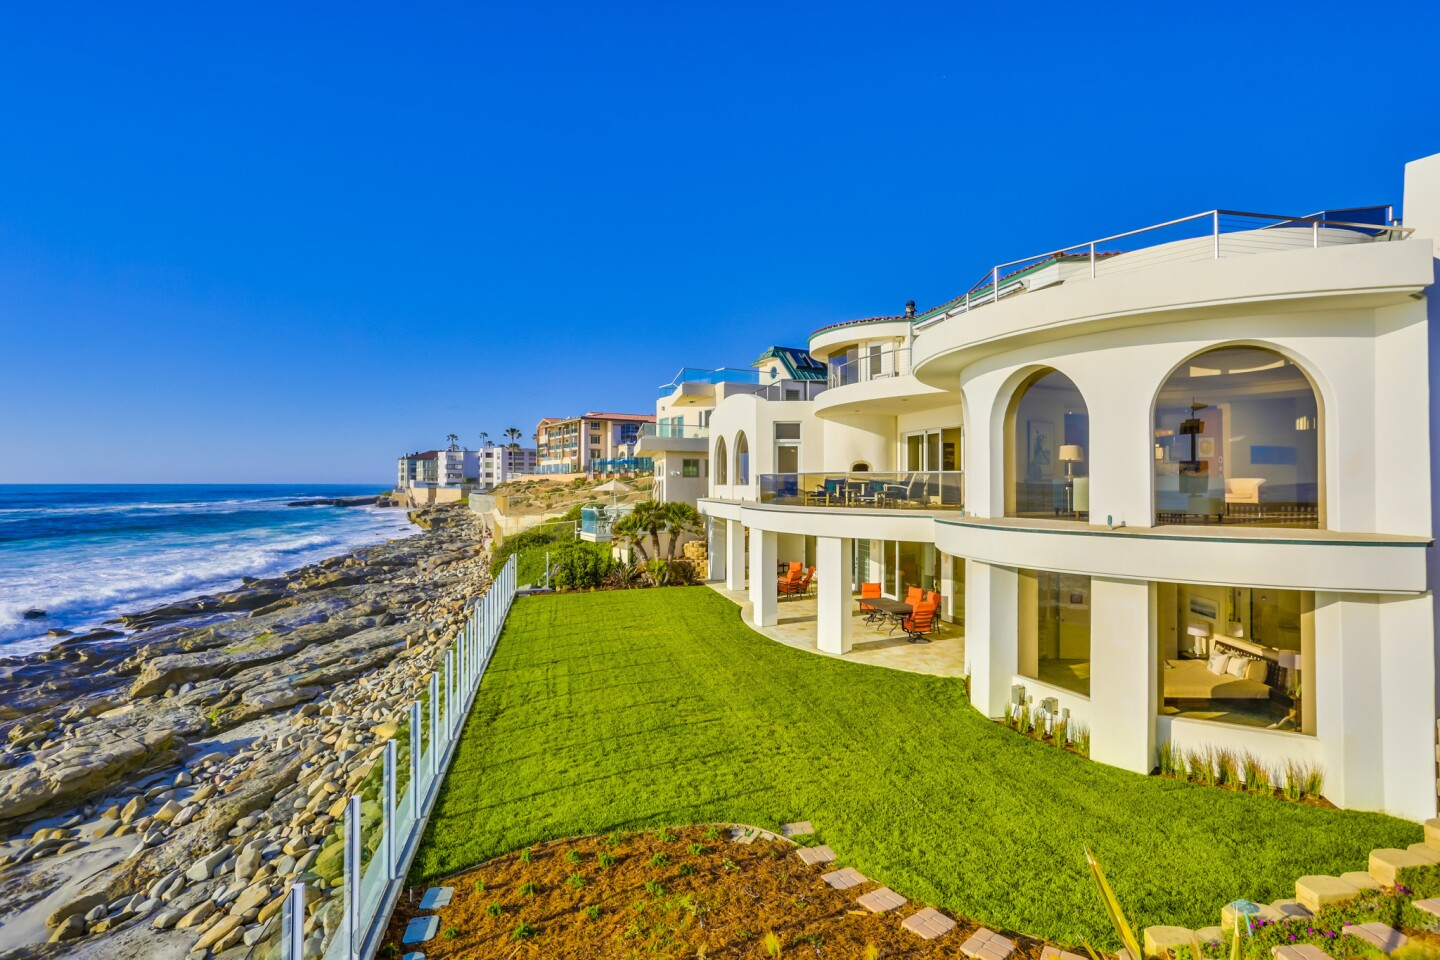 Home of the Day: Highest-priced beachfront estate in La Jolla